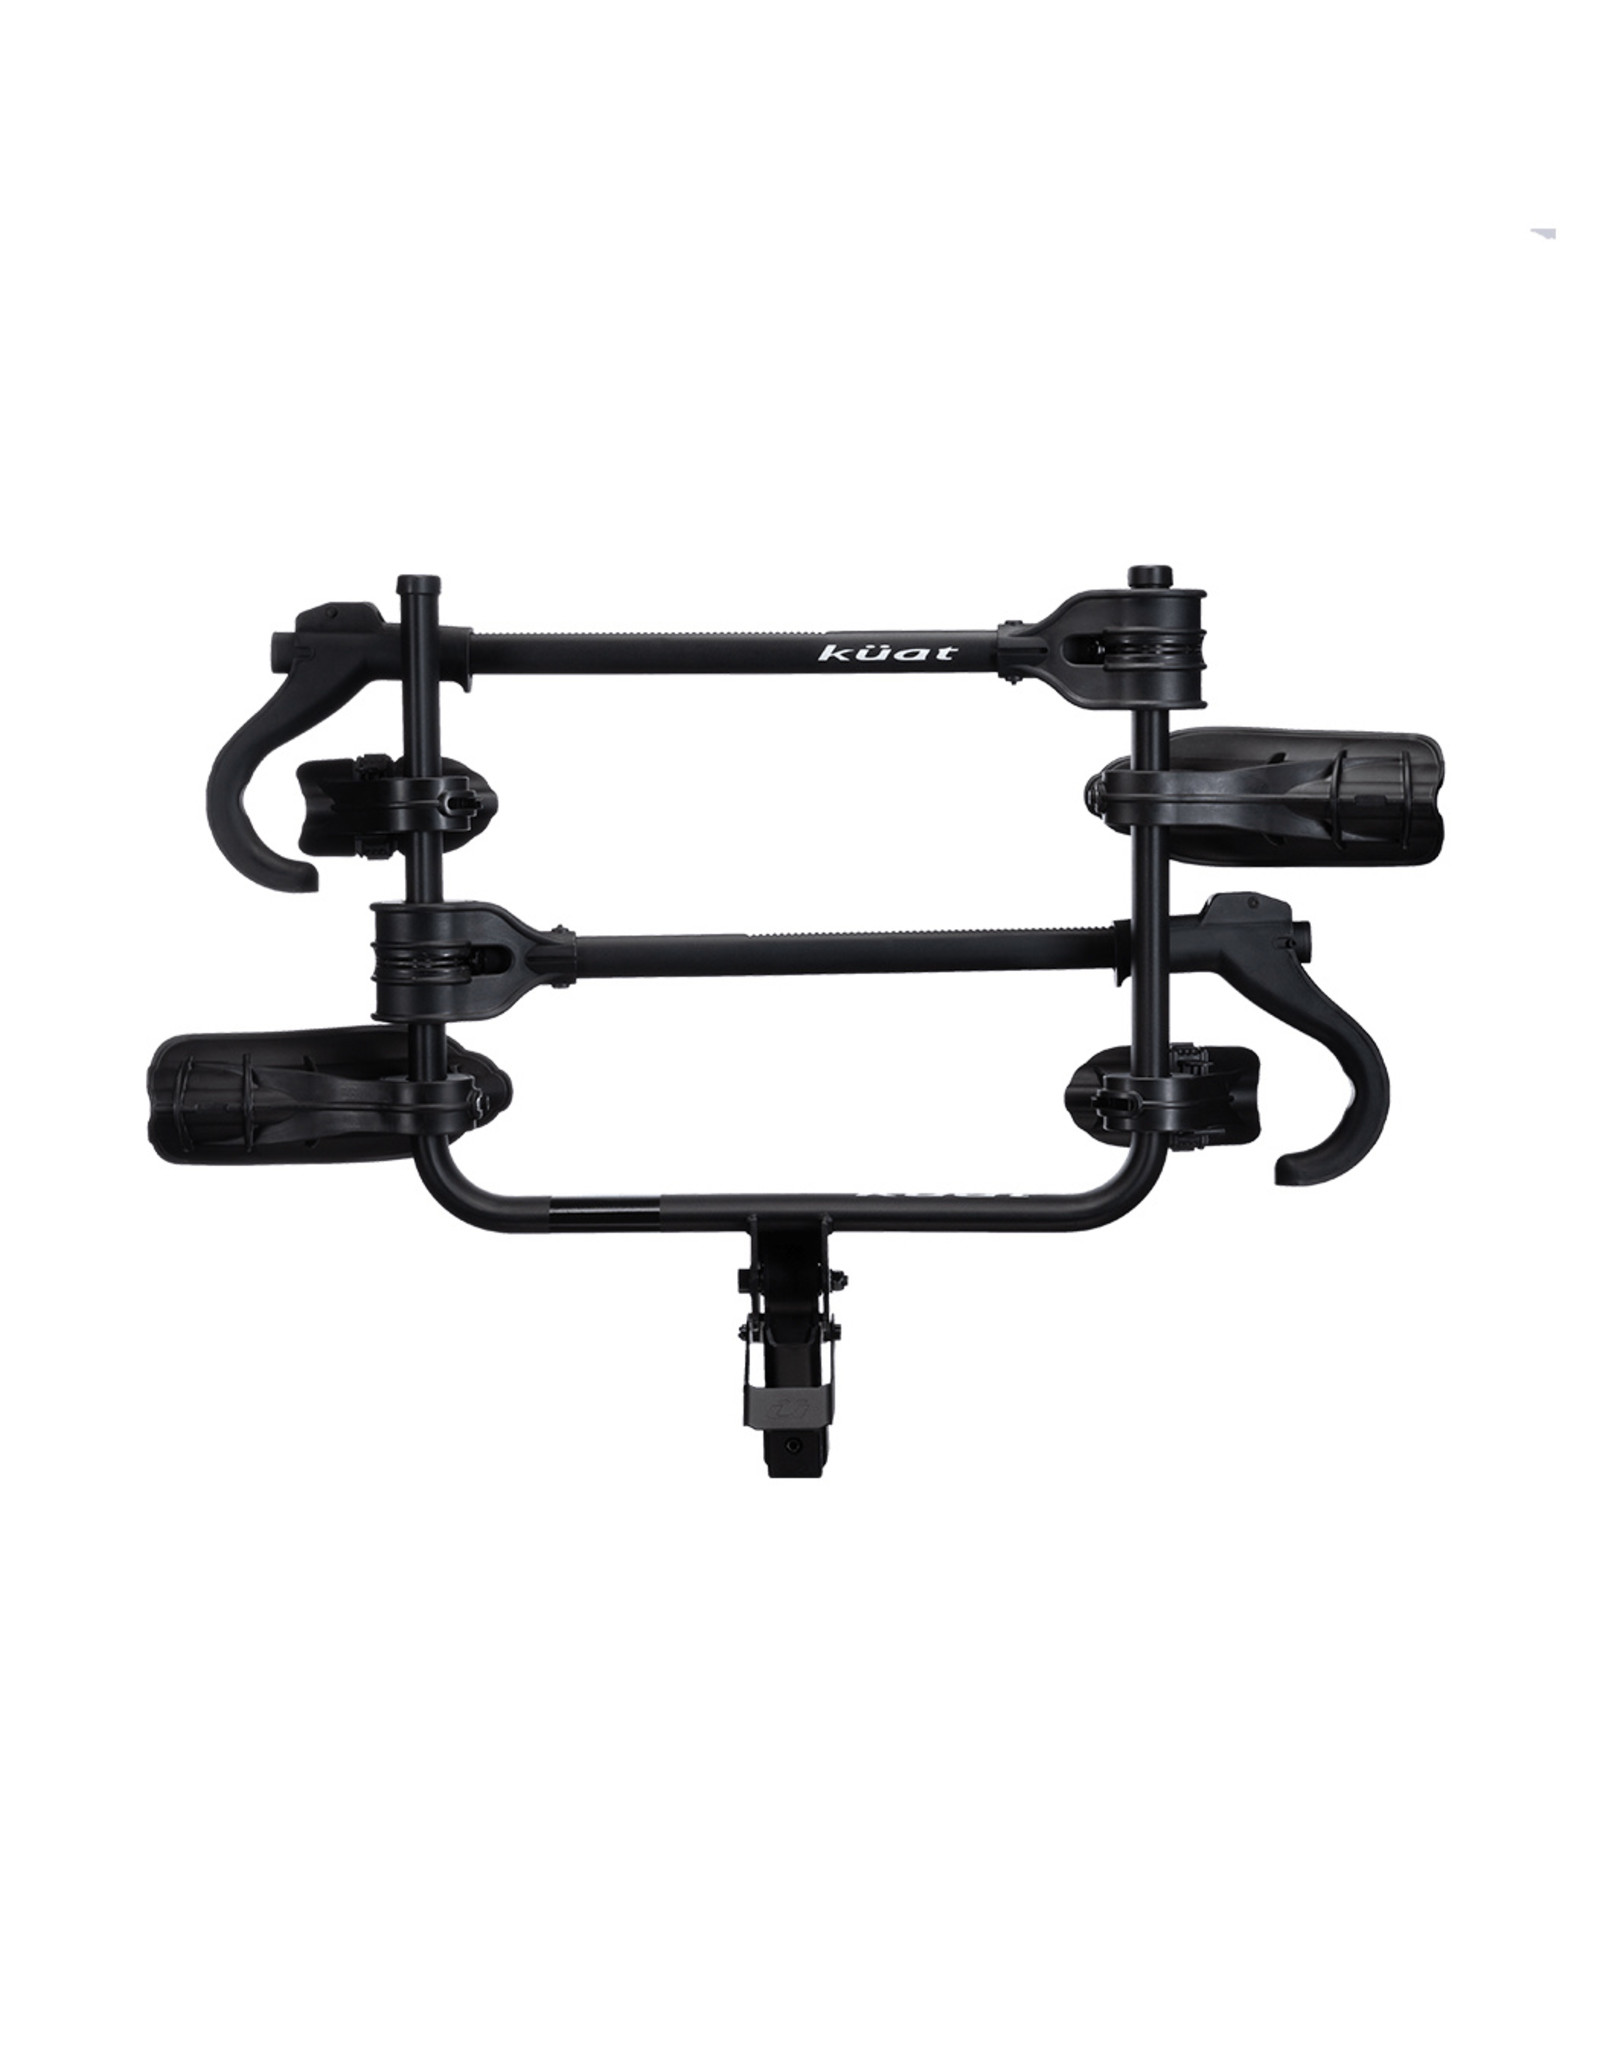 "Kuat Transfer v2 Hitch Bike Rack - 2-Bike, 2"" Receiver, Black"